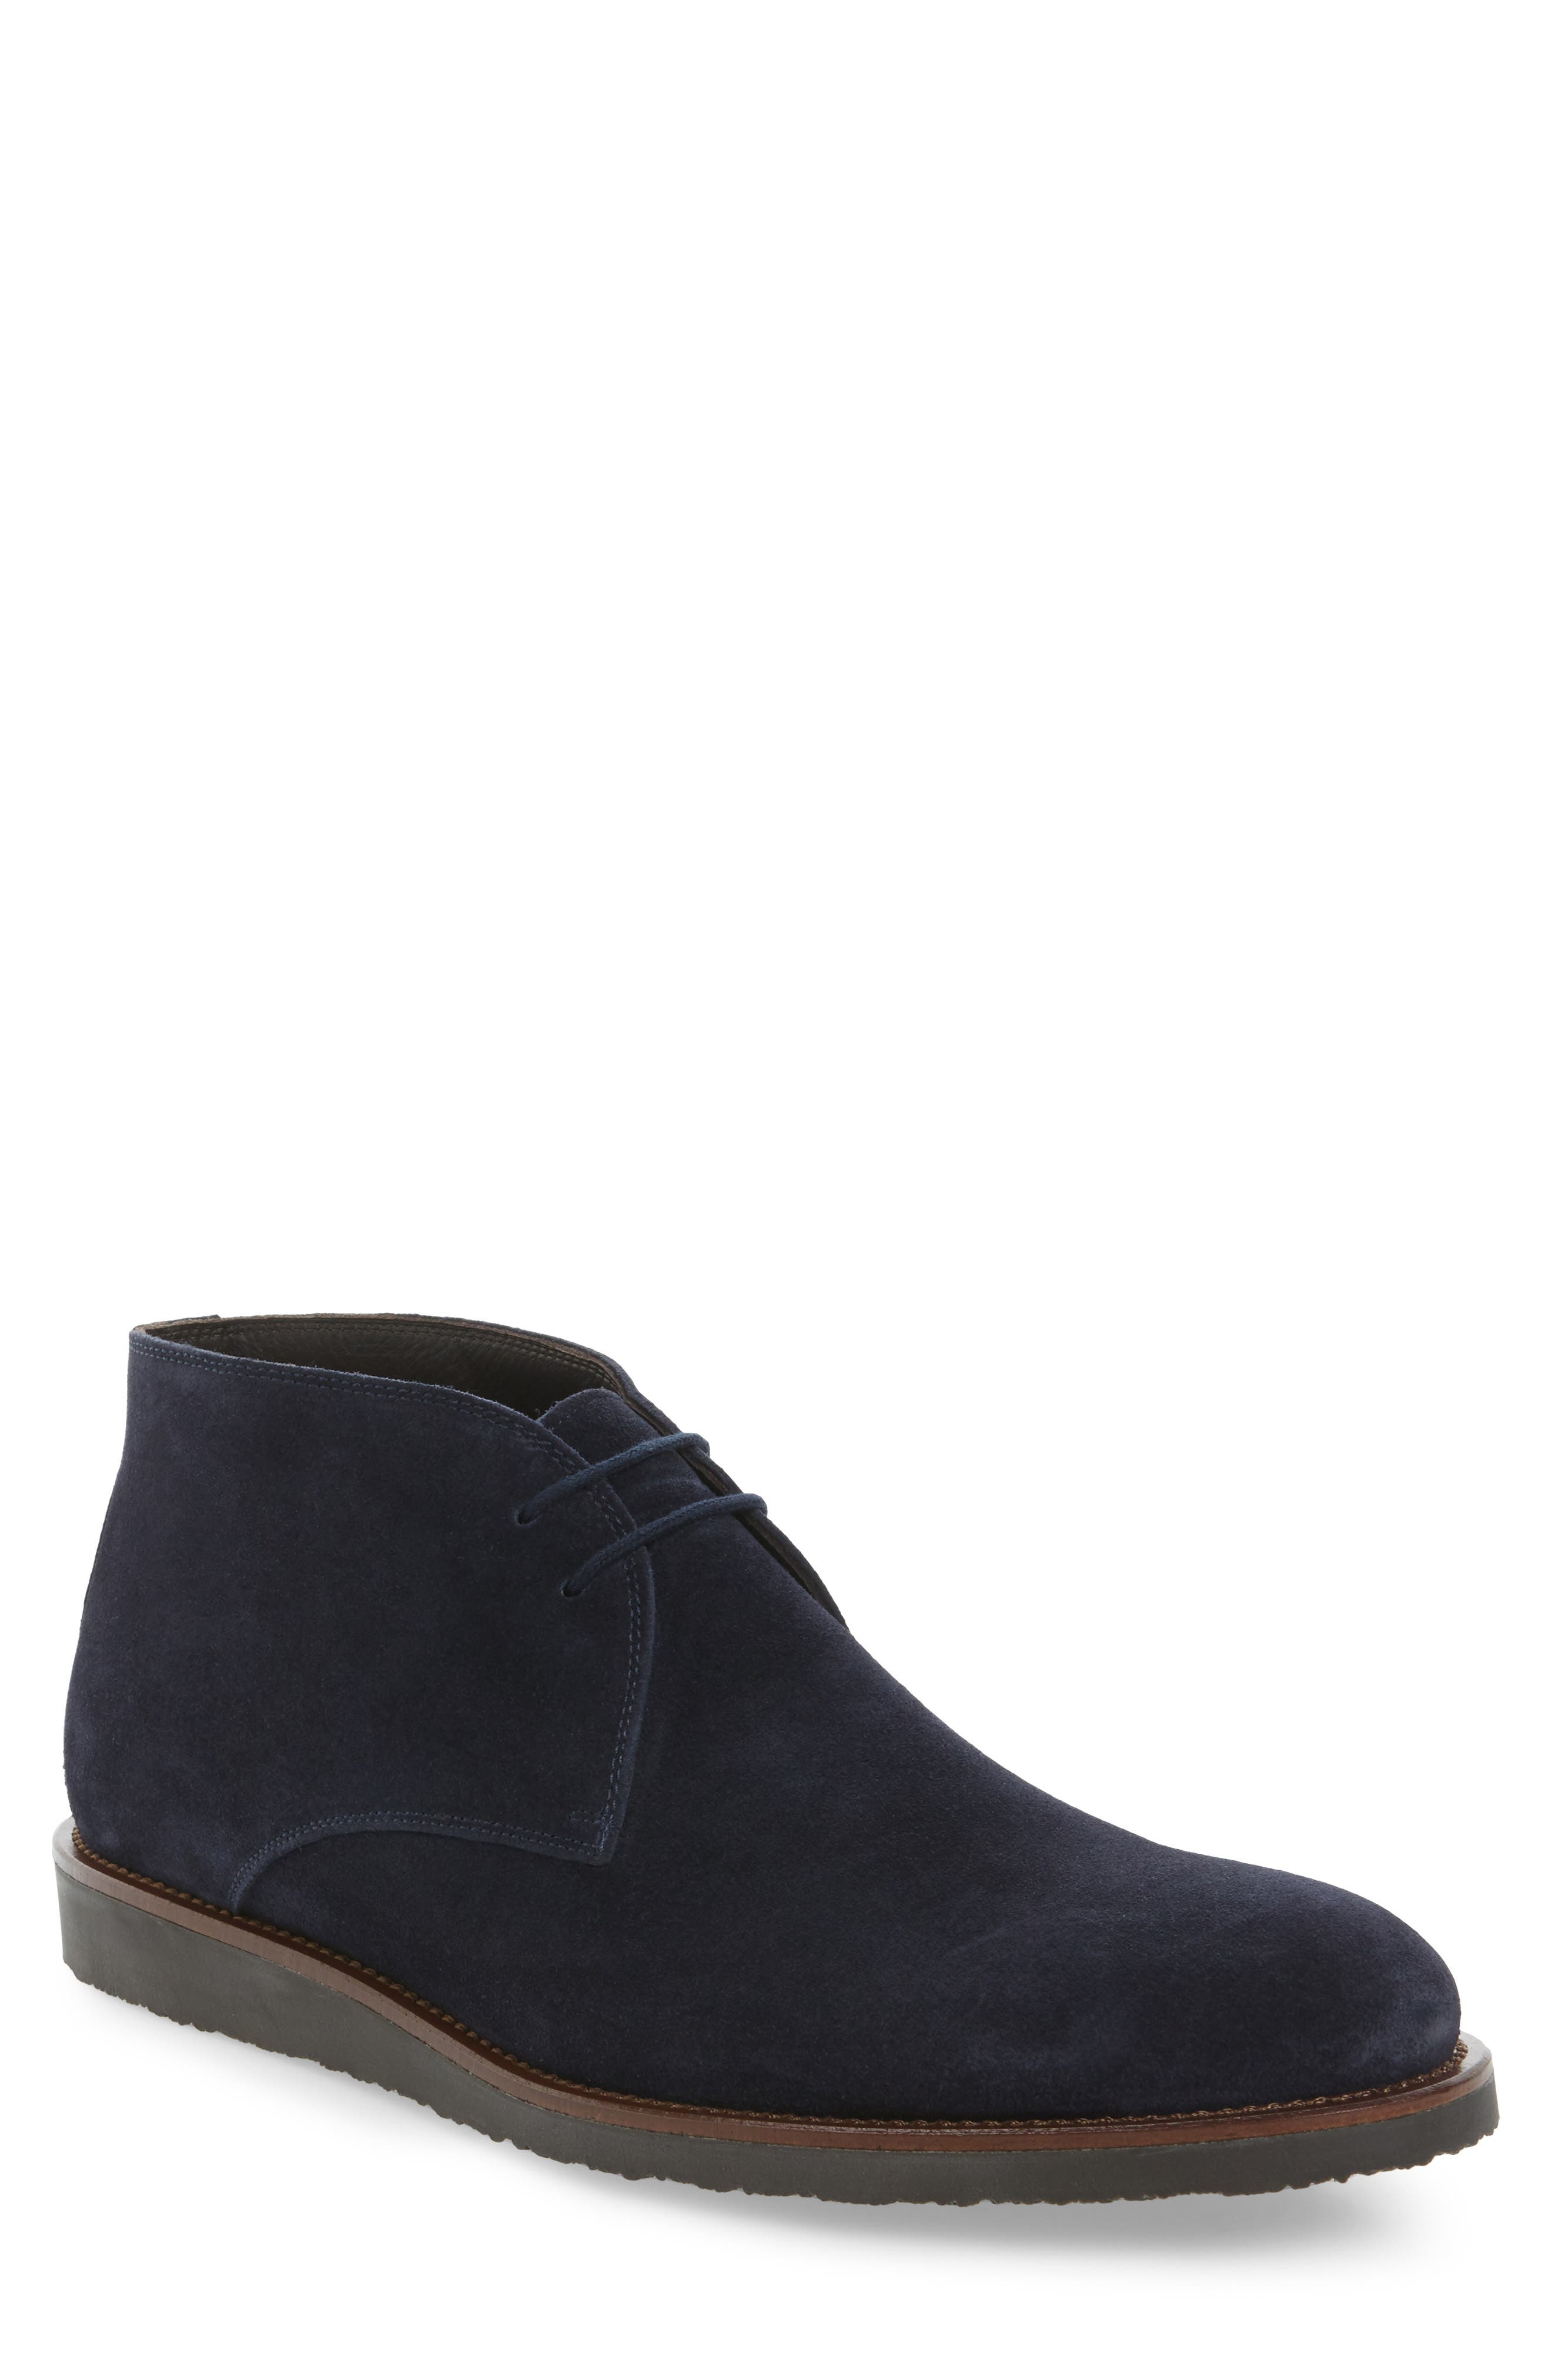 Franklin Chukka Boot,                         Main,                         color, Blue Suede